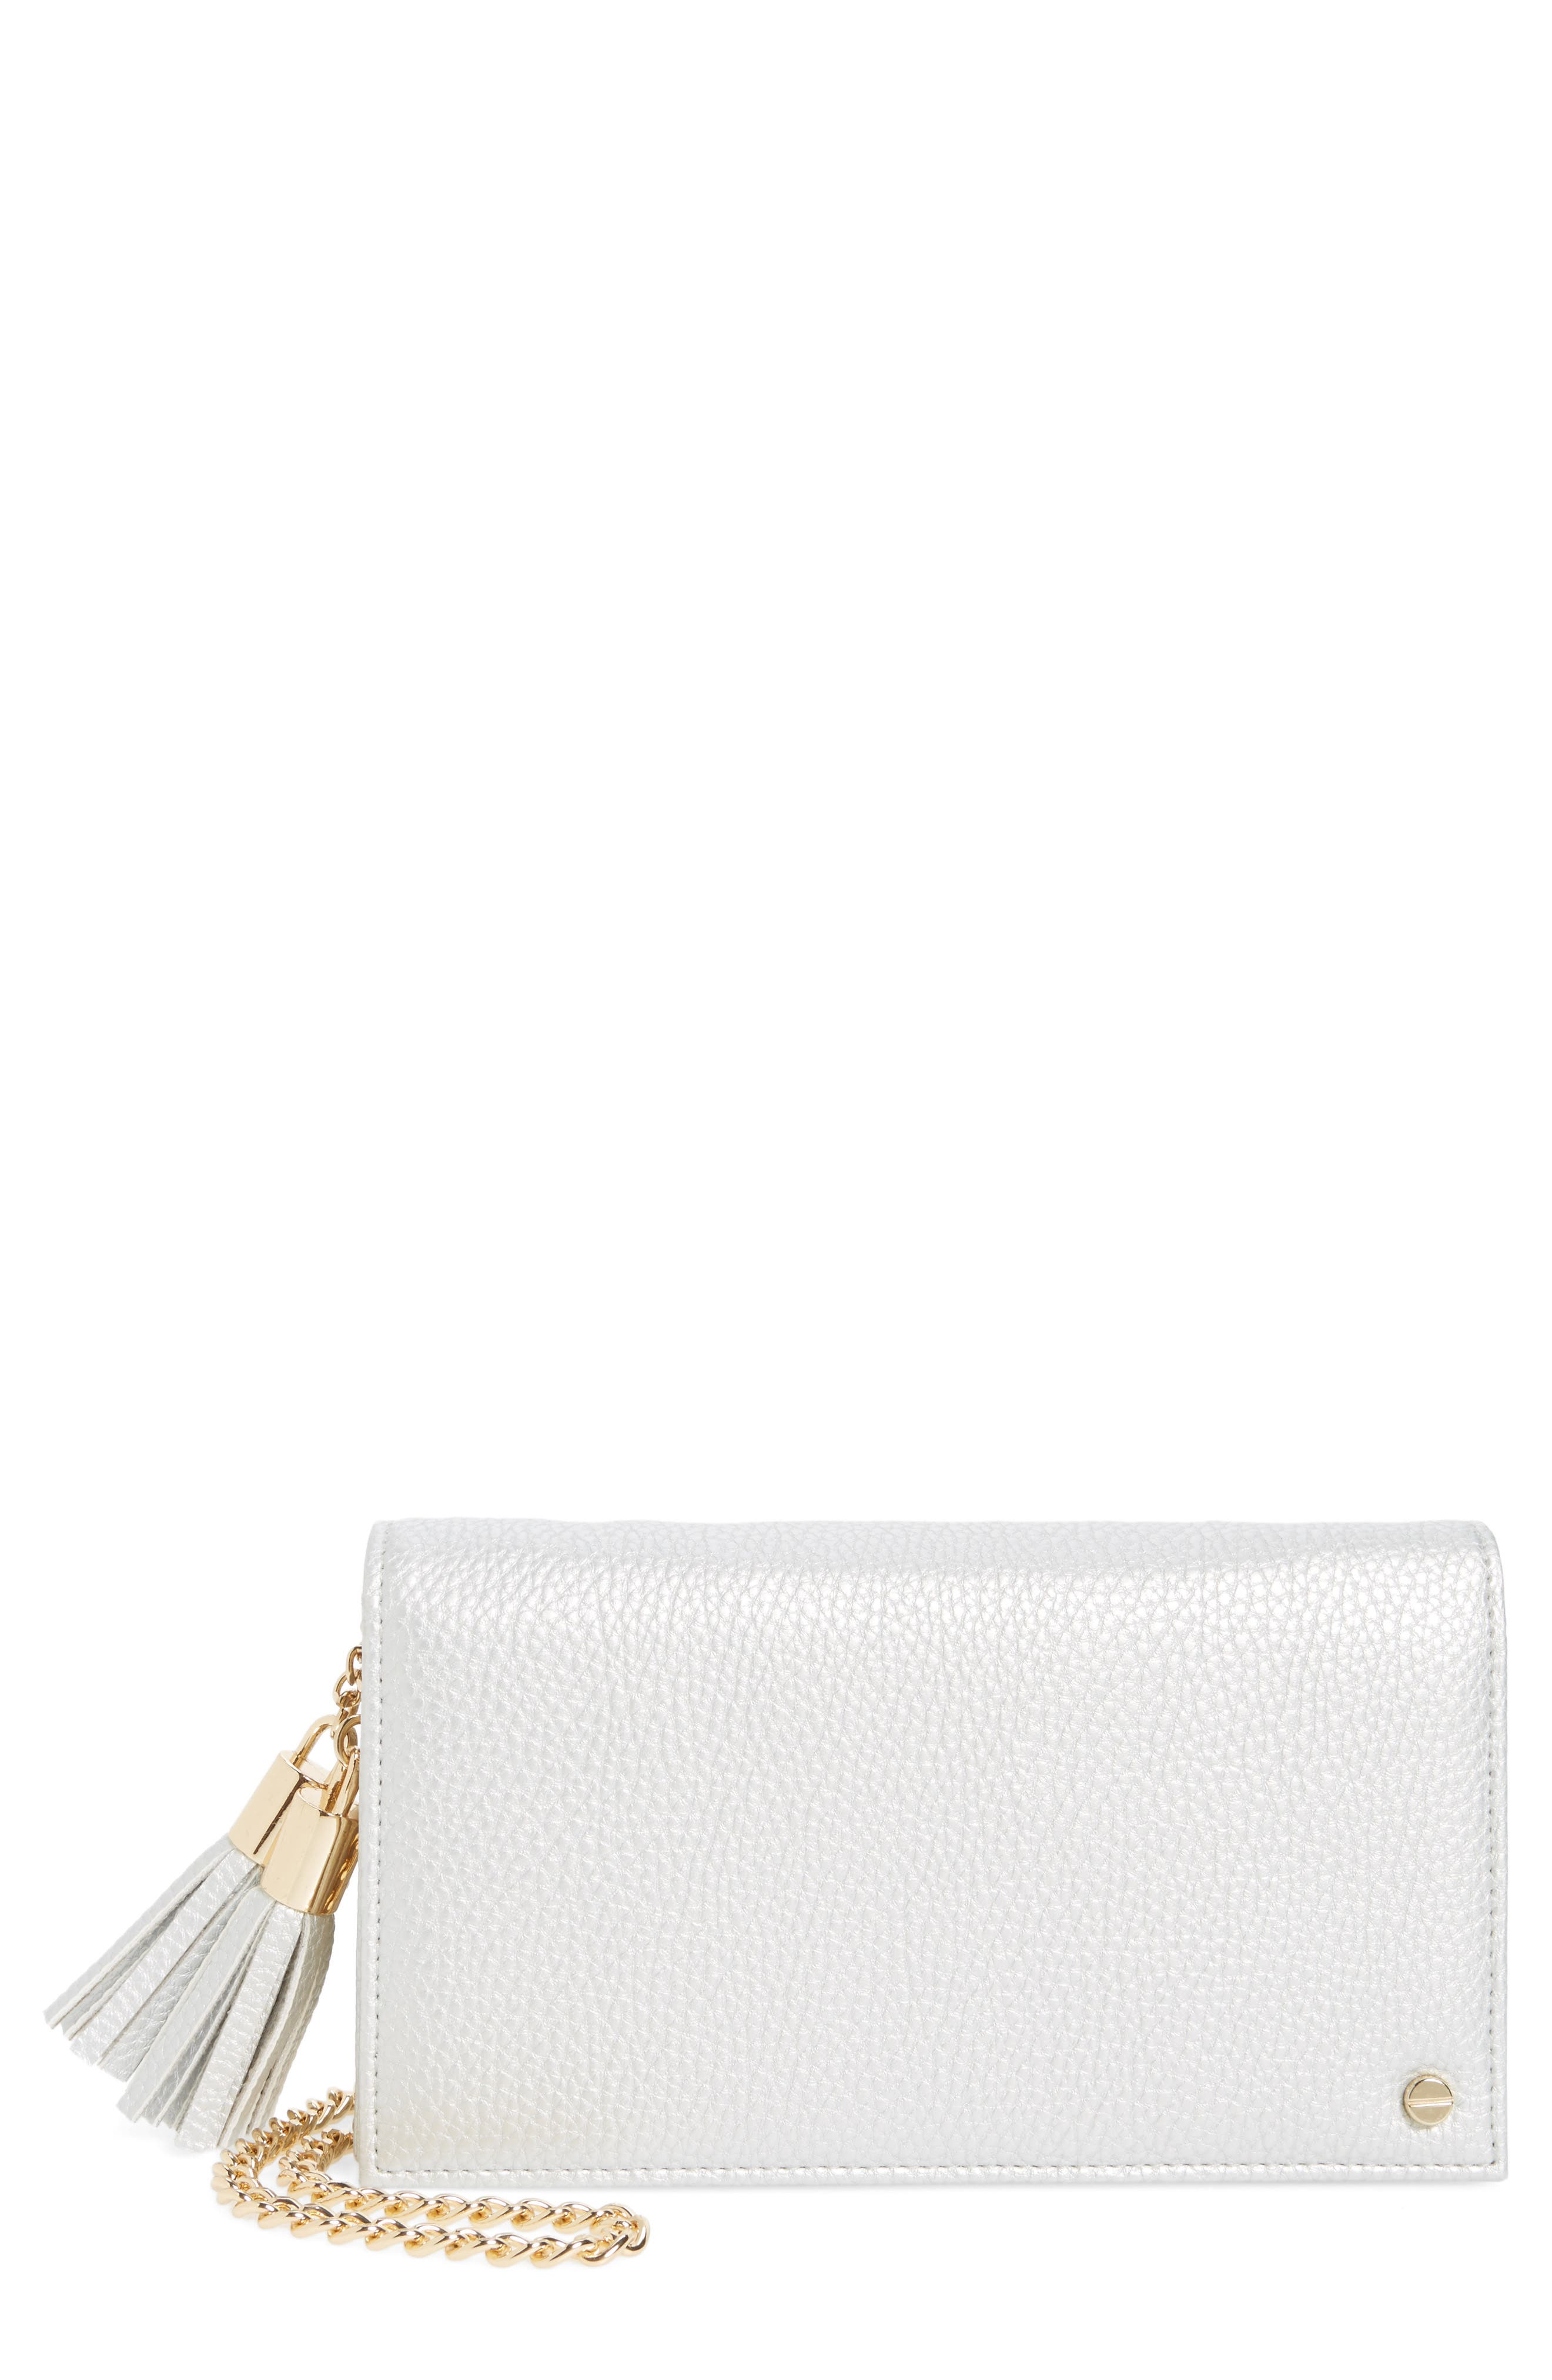 Mali + Lili Tassel Convertible Vegan Leather Clutch,                             Main thumbnail 1, color,                             Silver